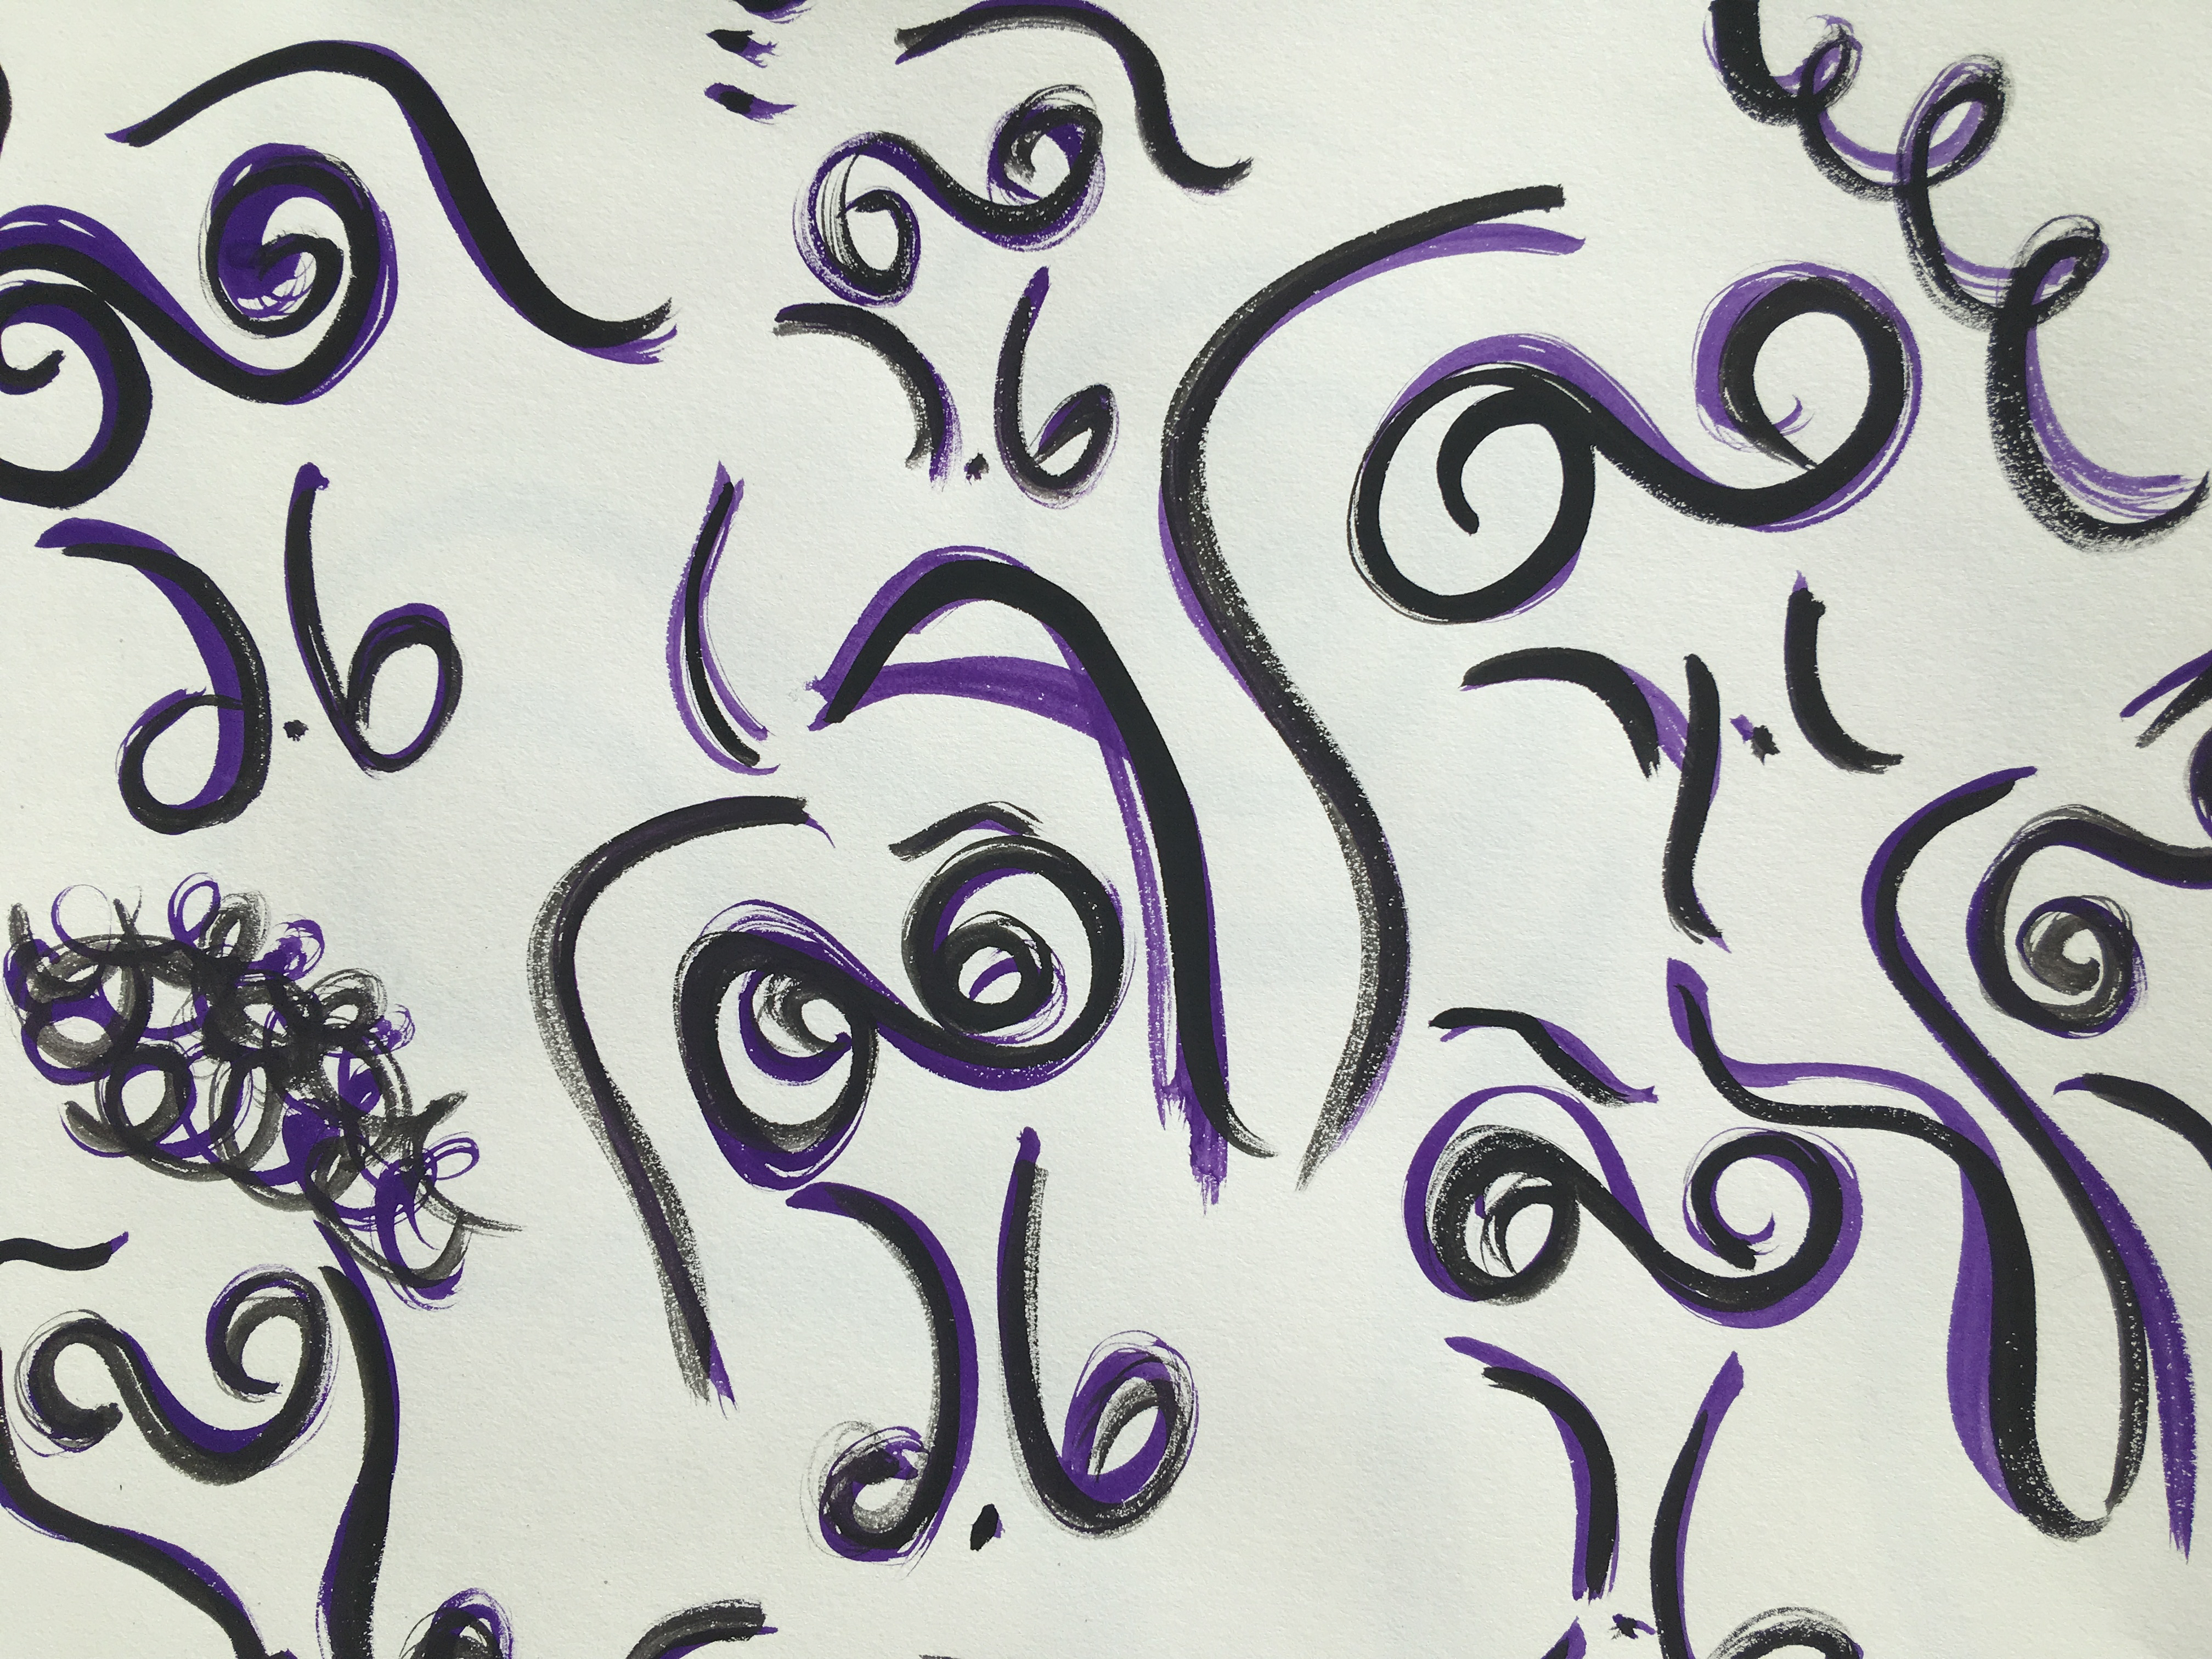 Abstract watercolor purple and black